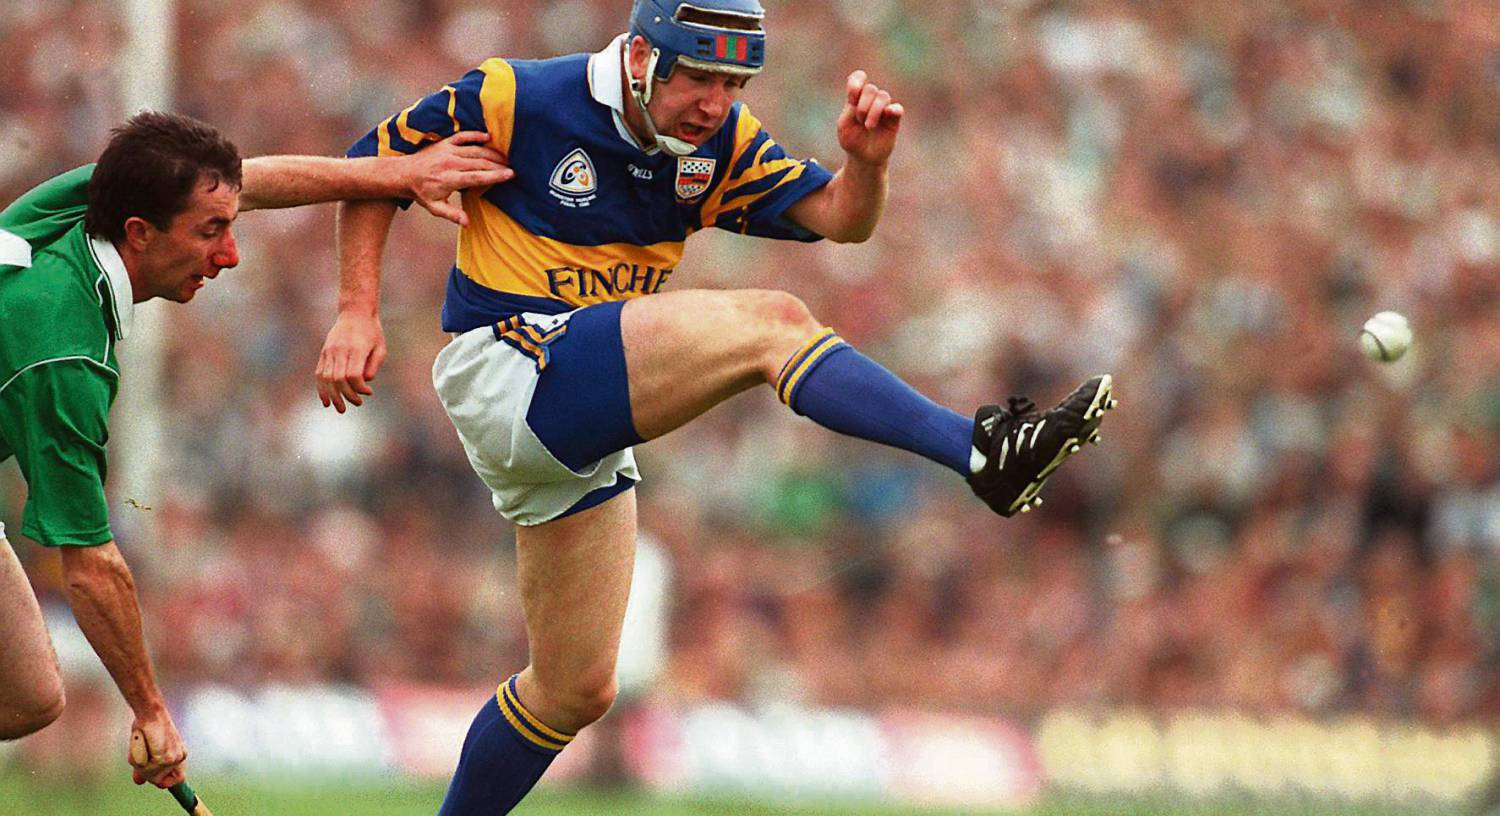 Sean Kelly: It's a knockout: Throwback Championship may be needed